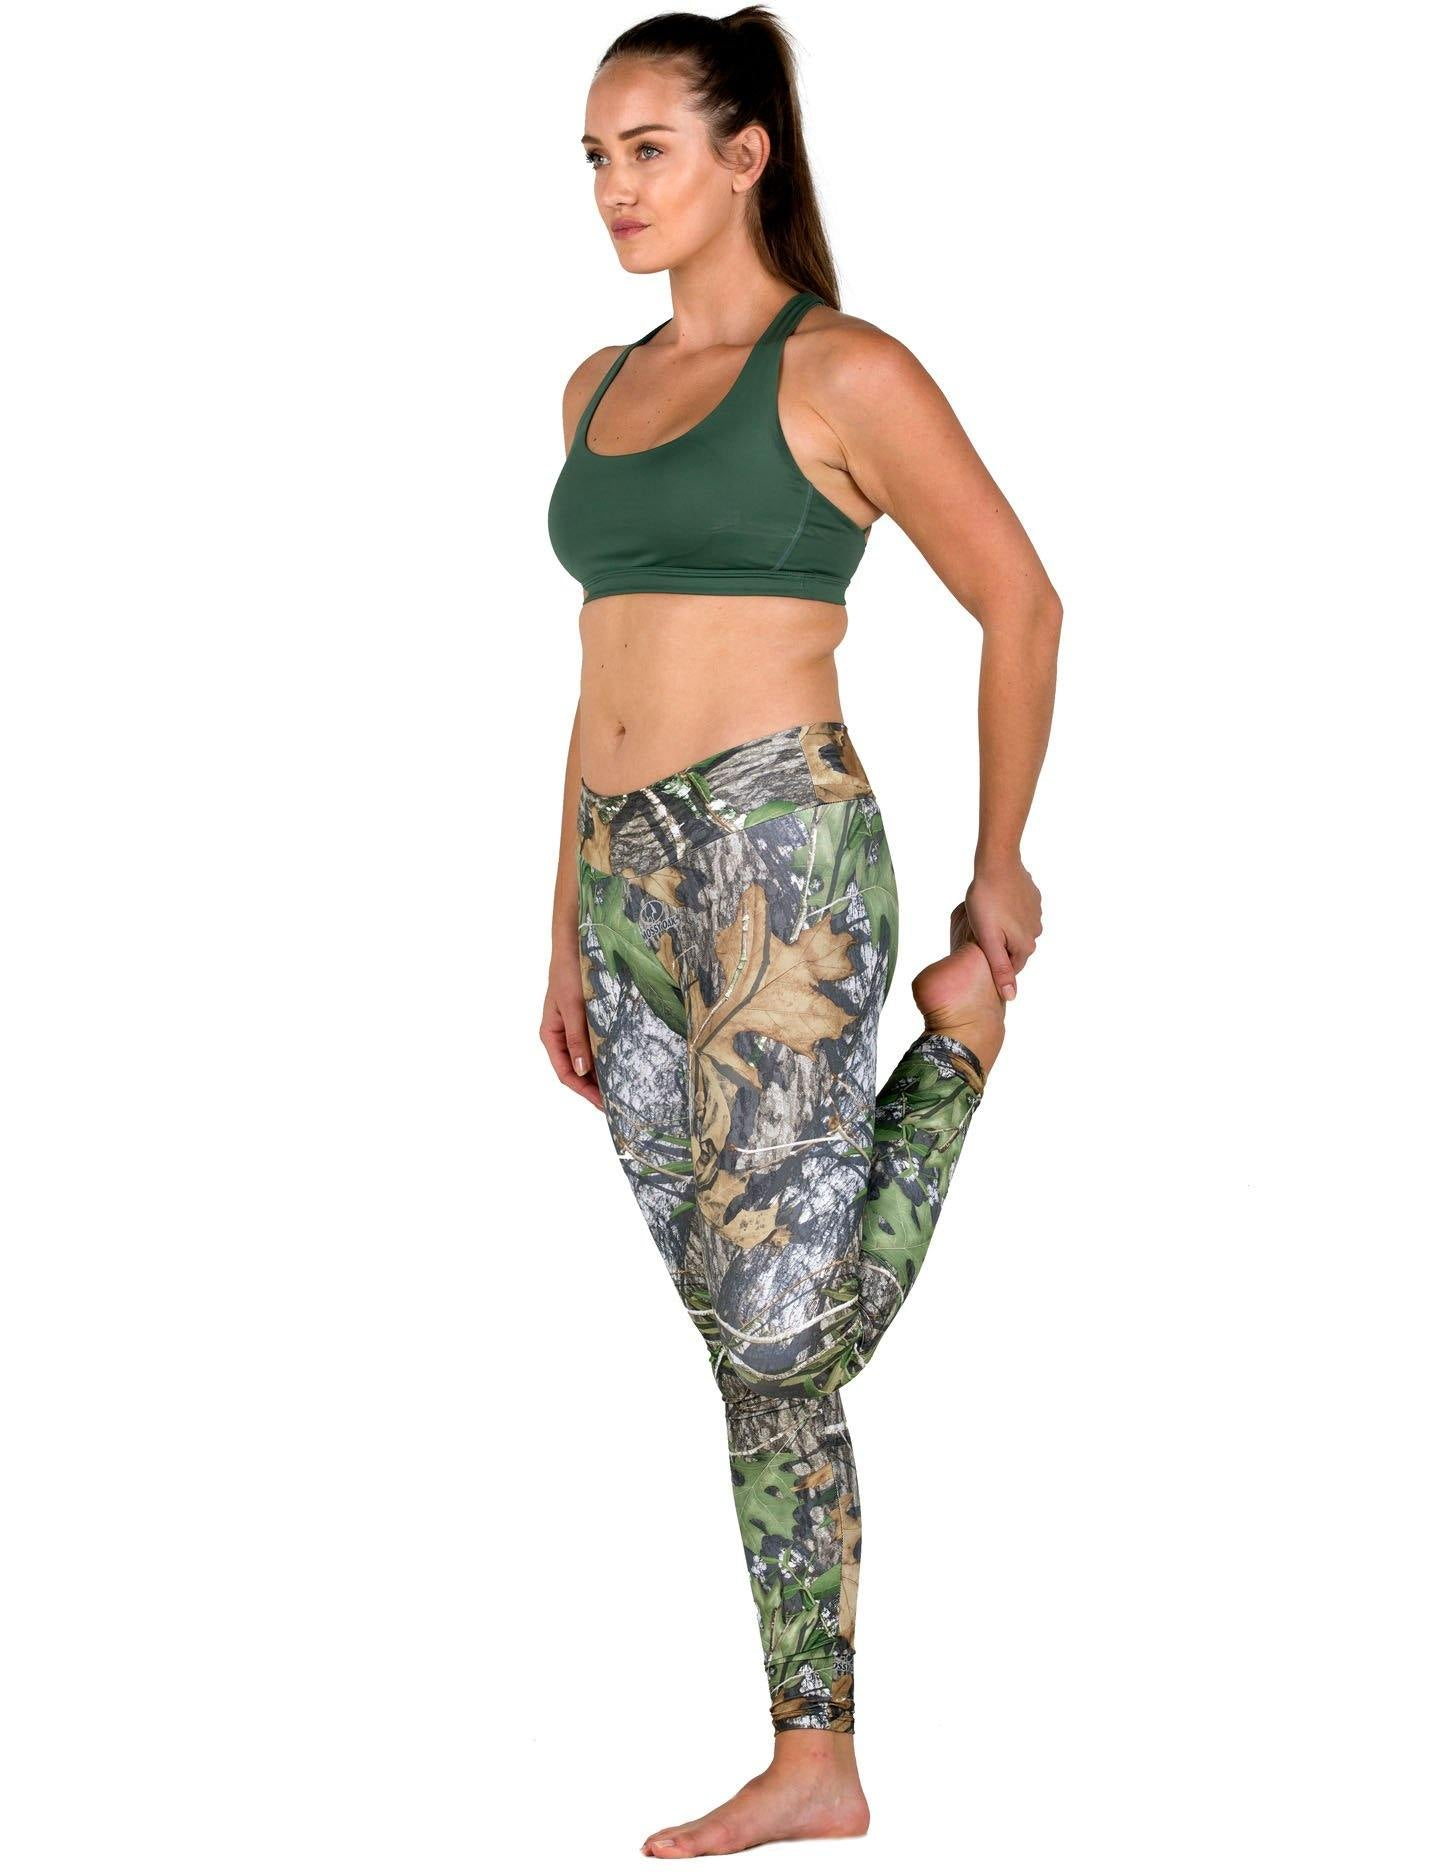 Apsara Leggings Low Waist Full Length, Mossy Oak Obsession - Apsara Style